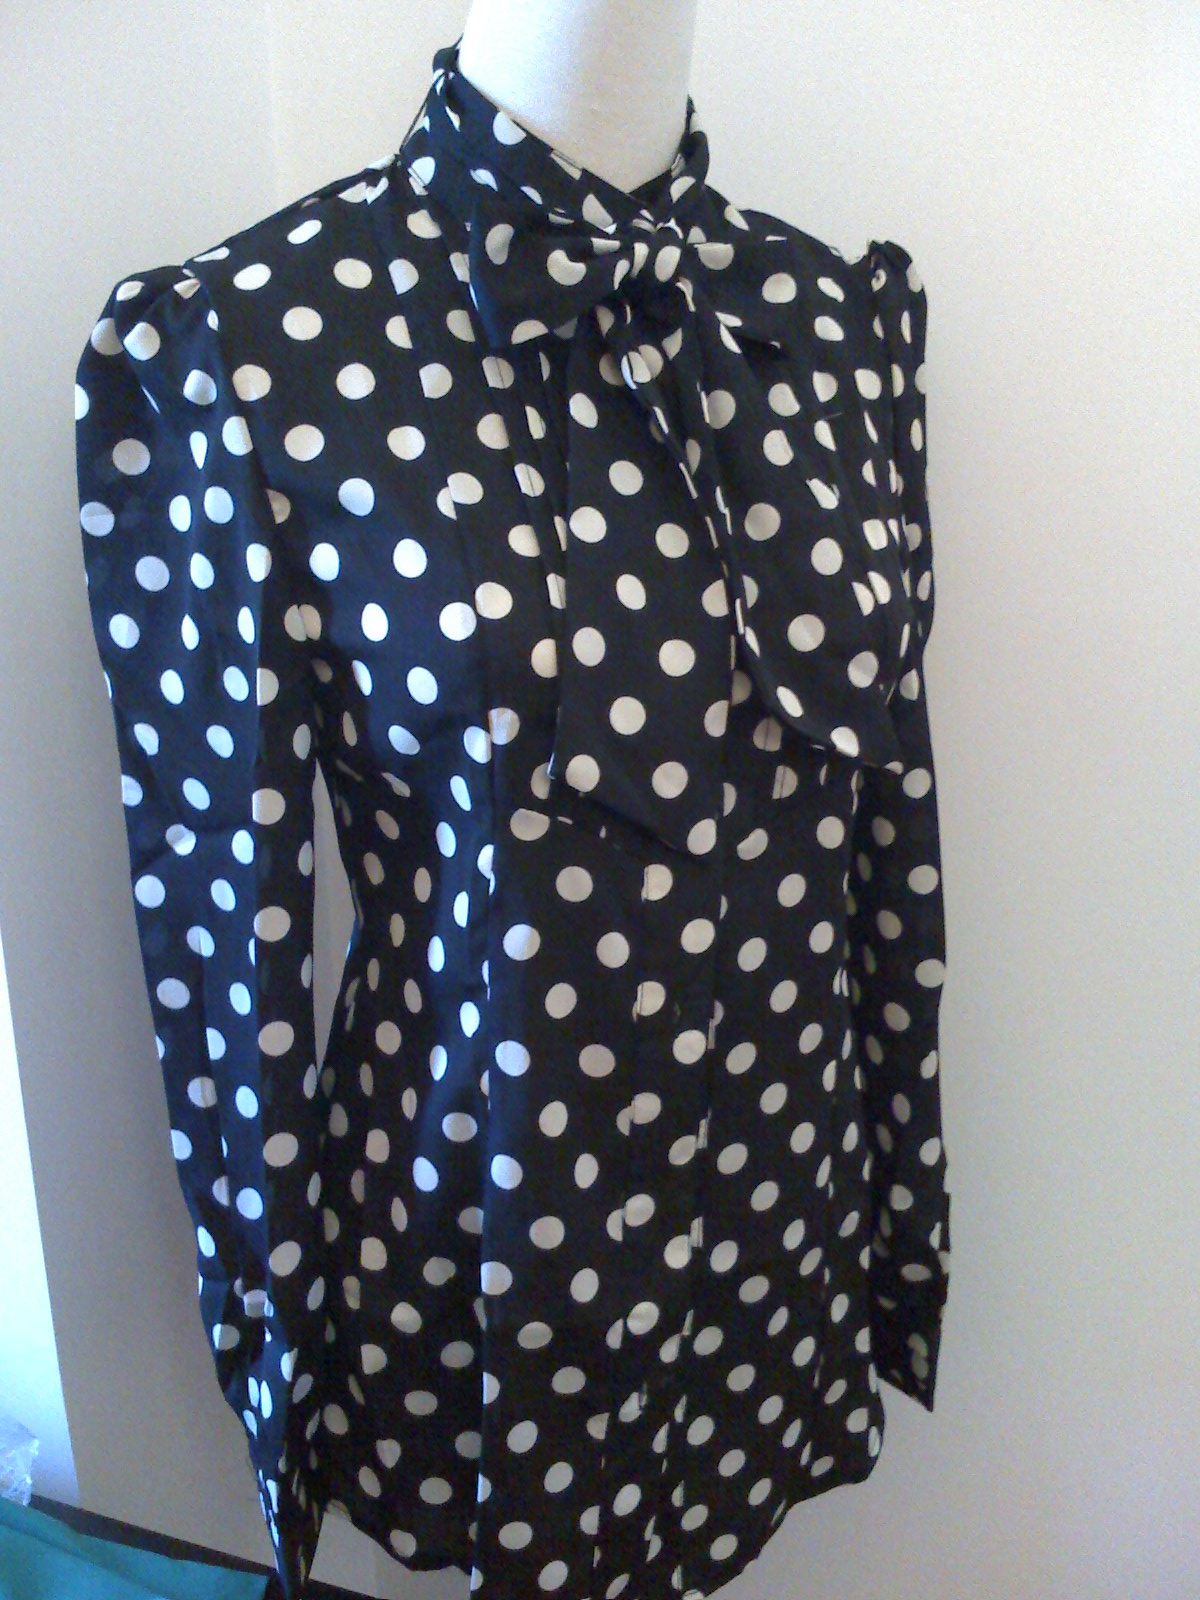 Buy the latest chiffon polka dots blouses cheap shop fashion style with free shipping, and check out our daily updated new arrival chiffon polka dots blouses at hereuloadu5.ga Polka Dot Shorts Black And White Polka Dot Bikini Polka Dot Dresses Polka Dot Blouse Long Sleeve Chiffon Maxi Dress Polka Dot Long Sleeve T Shirt Chiffon Maxi Dress With.